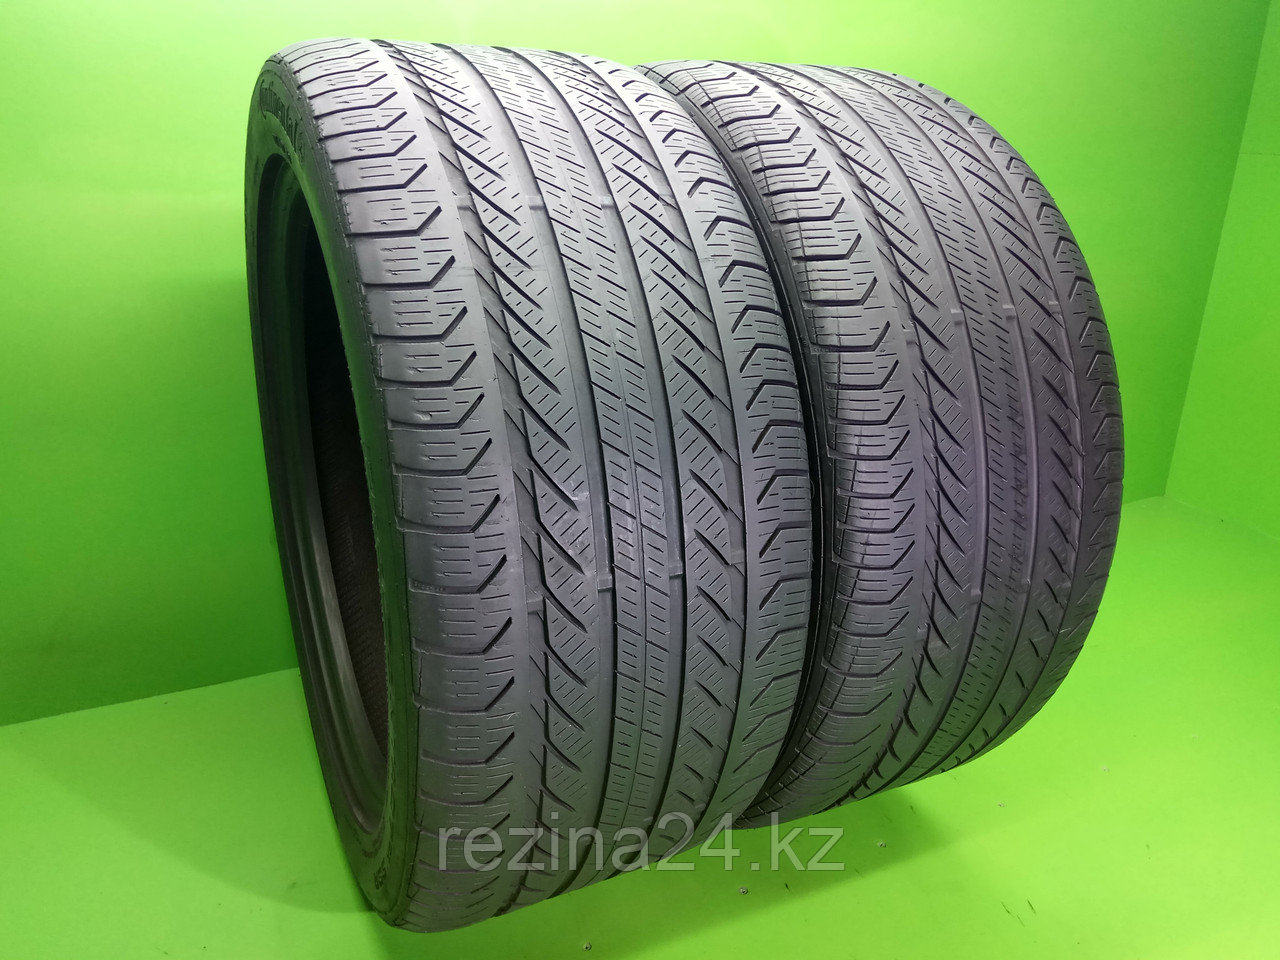 275/40 R 19 (101H) M+S CONTINENTAL Pro Contact GX SSR всесезонные б/у шины